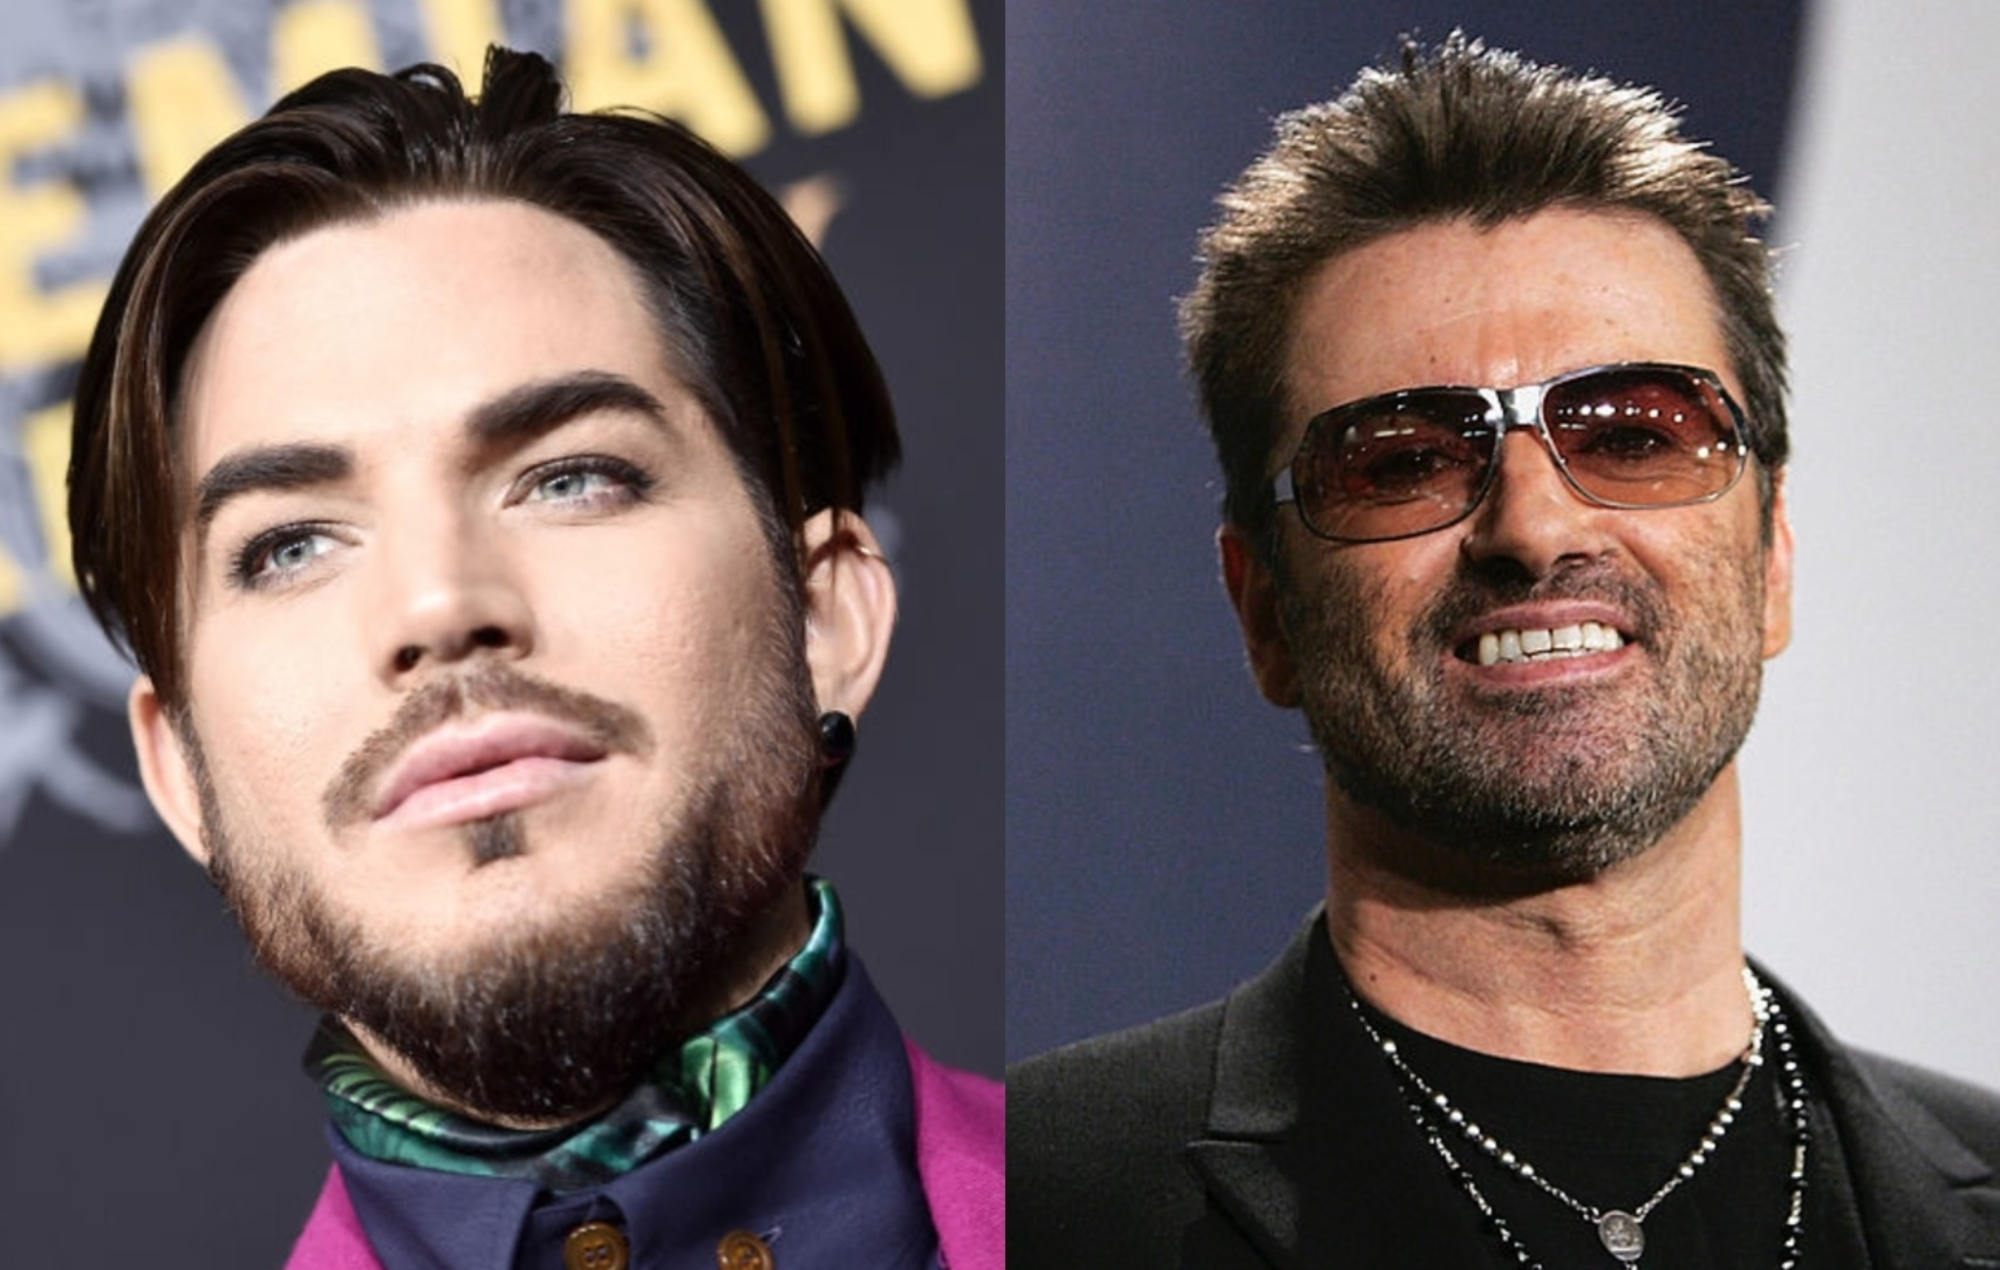 Adam Lambert says he would be up for playing George Michael in singer's biopic - EpicNews